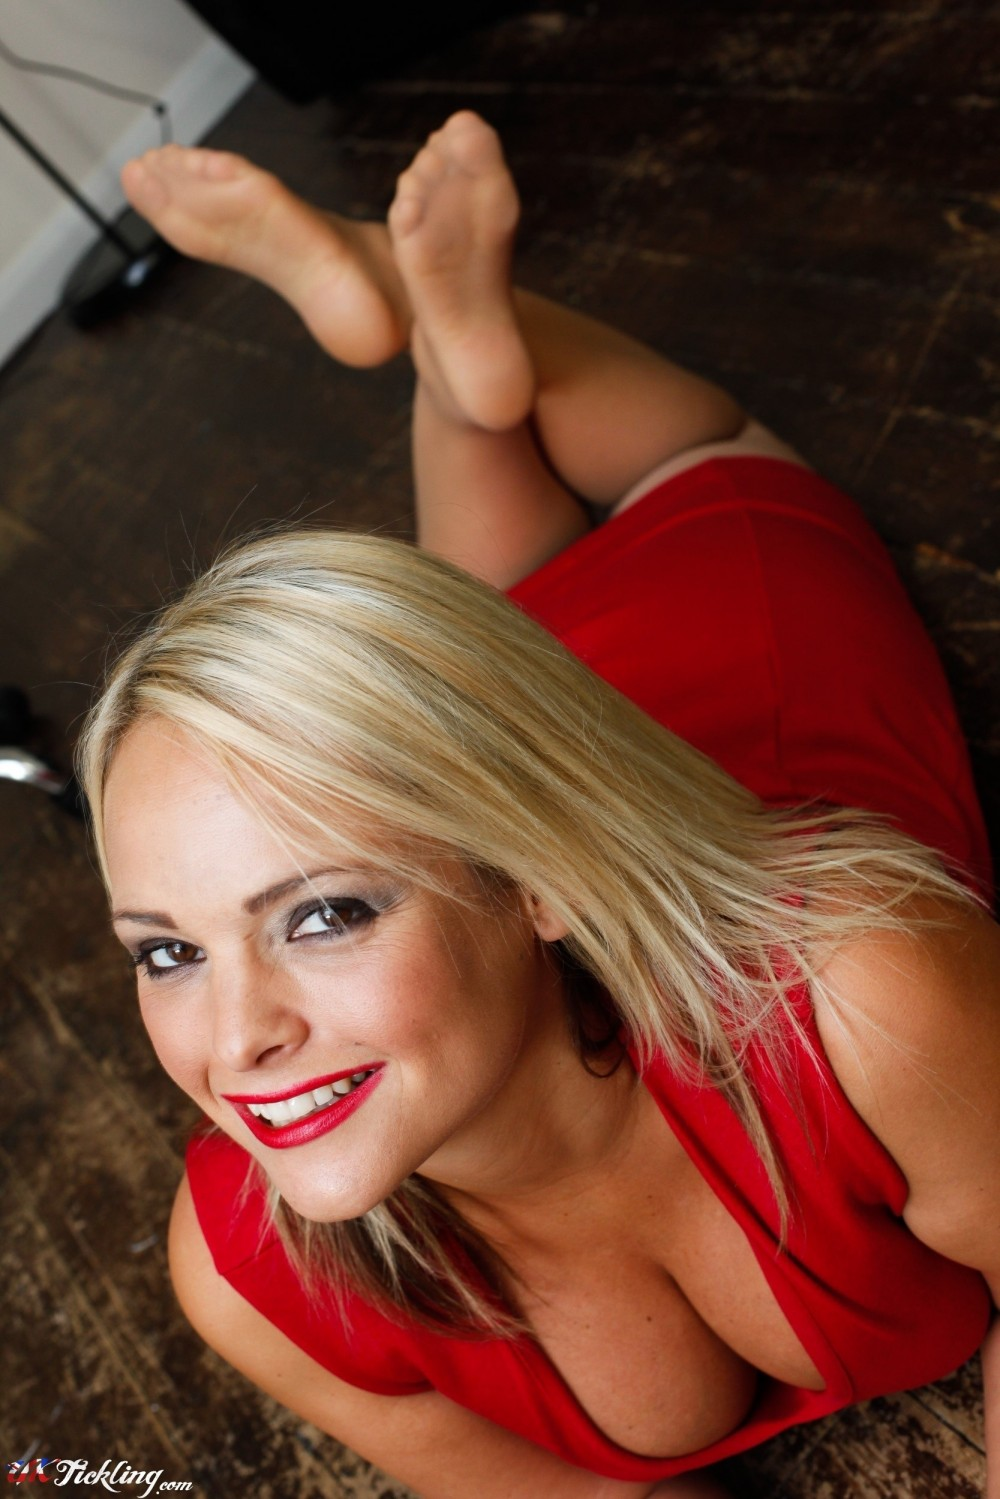 Izzy Uk Tickling Classy uk tickling   galleries   photos   holly mcguire 02